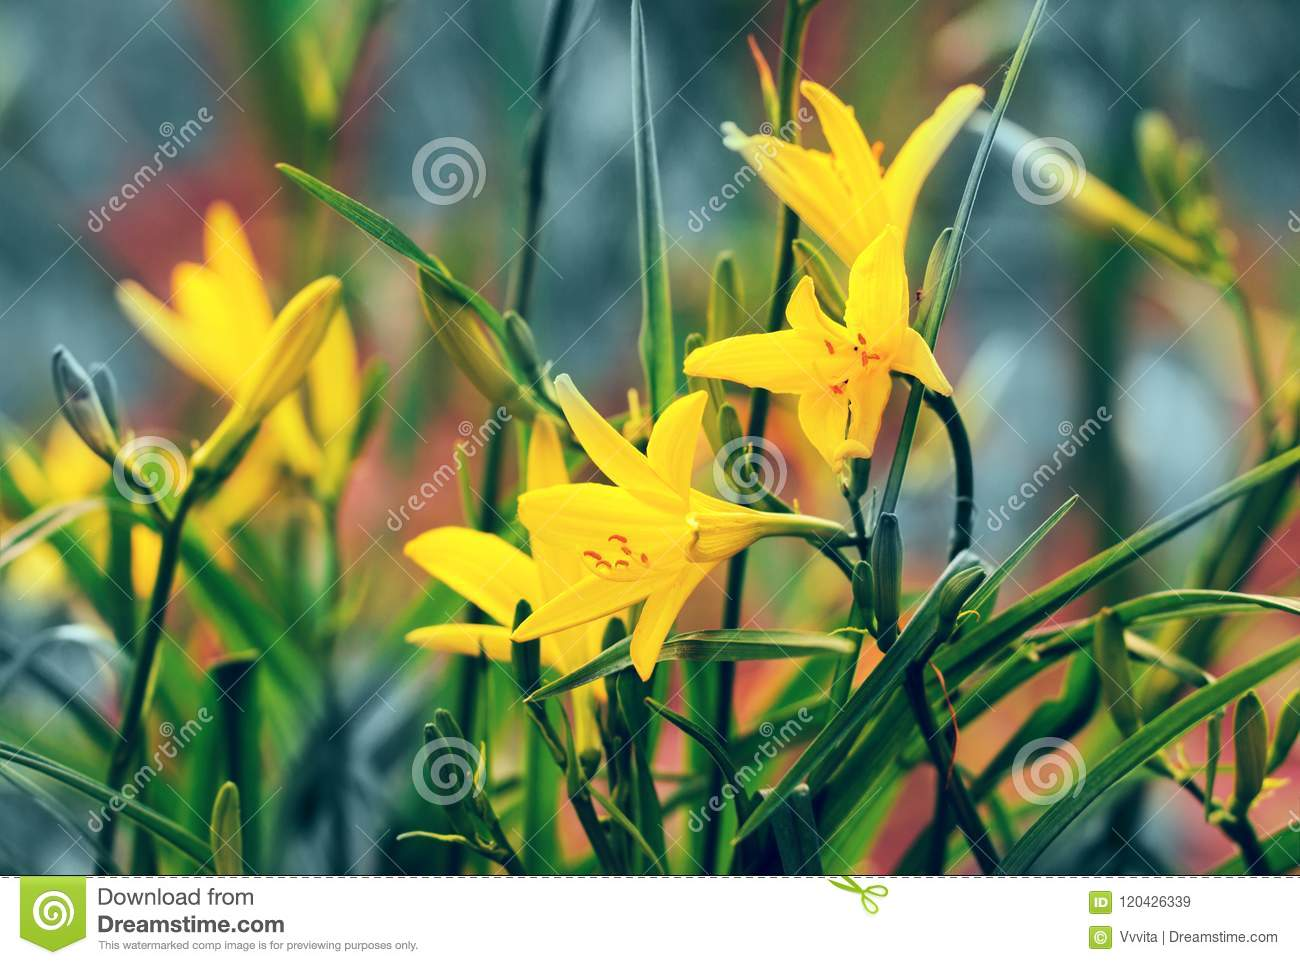 Vintage Wild Lily Flowers Stock Image Image Of Wild 120426339